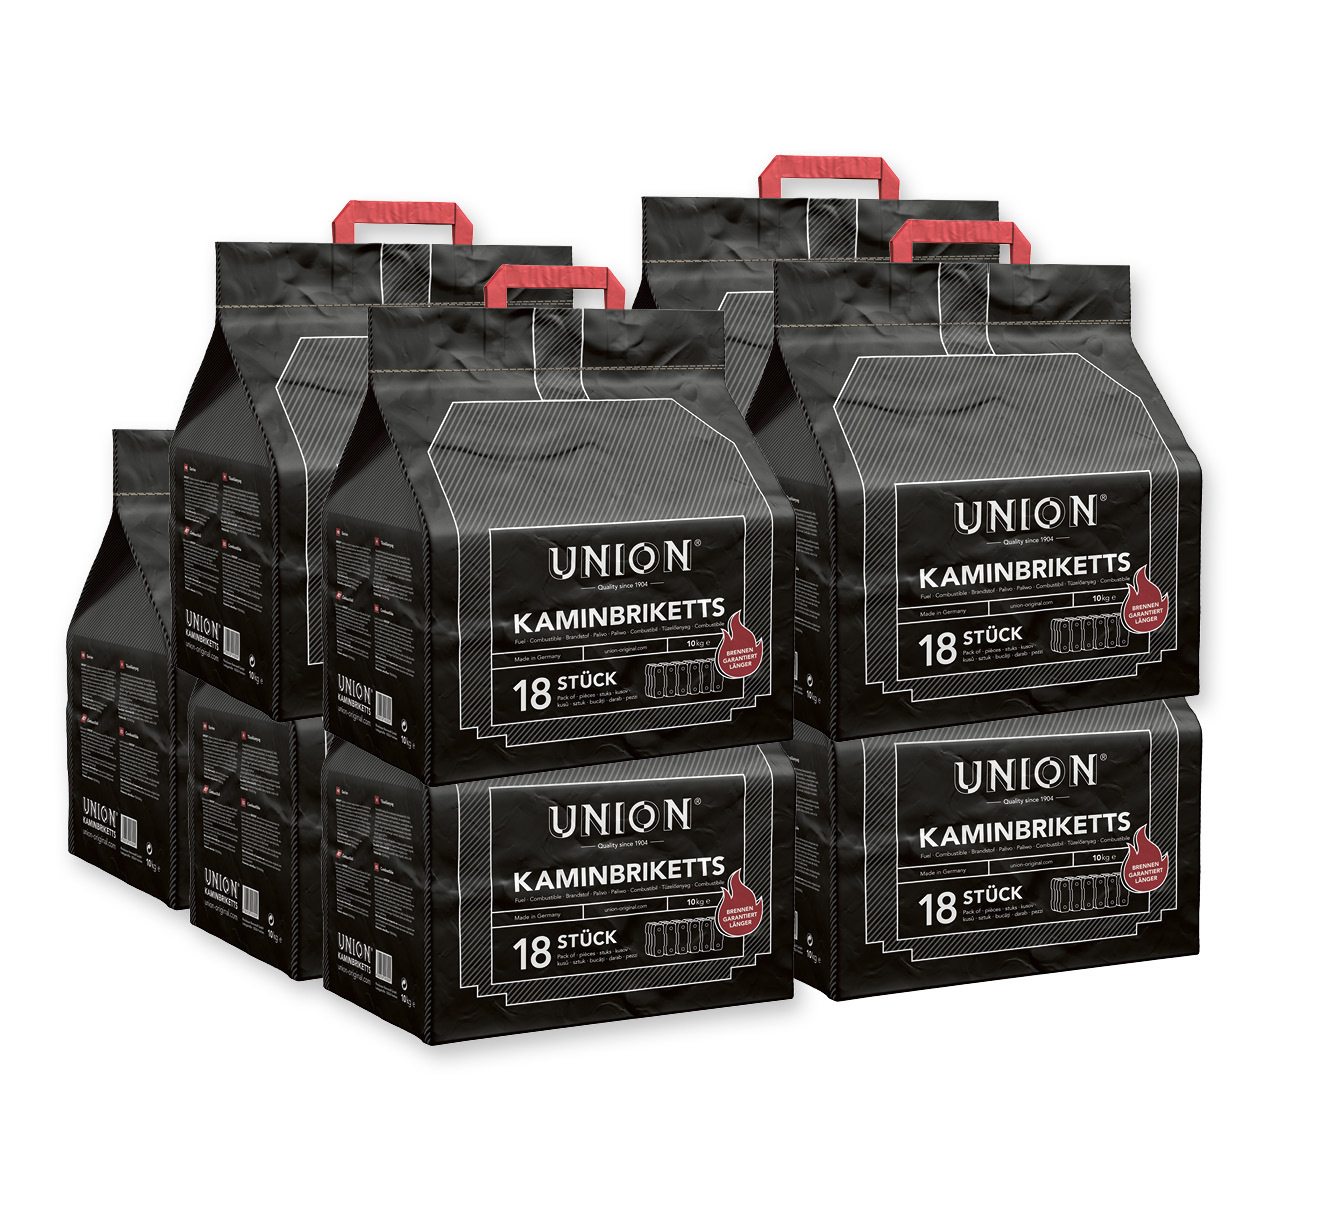 UNION® Kaminbriketts